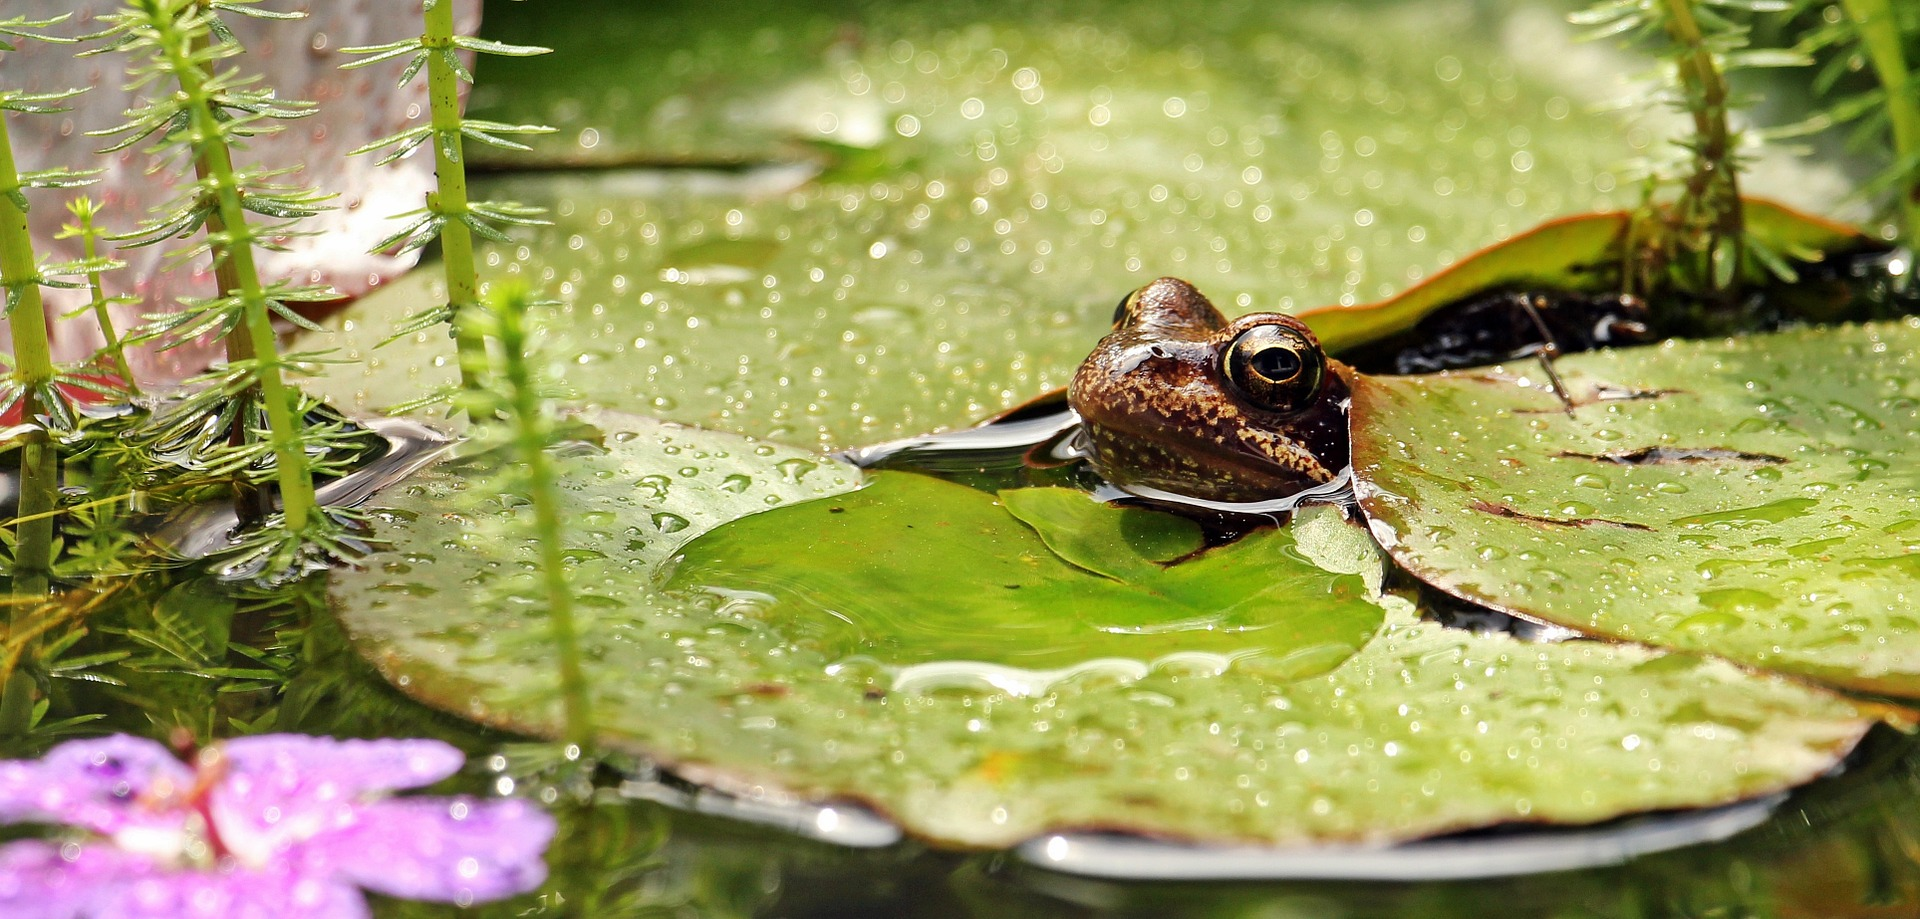 frog-1445496_1920